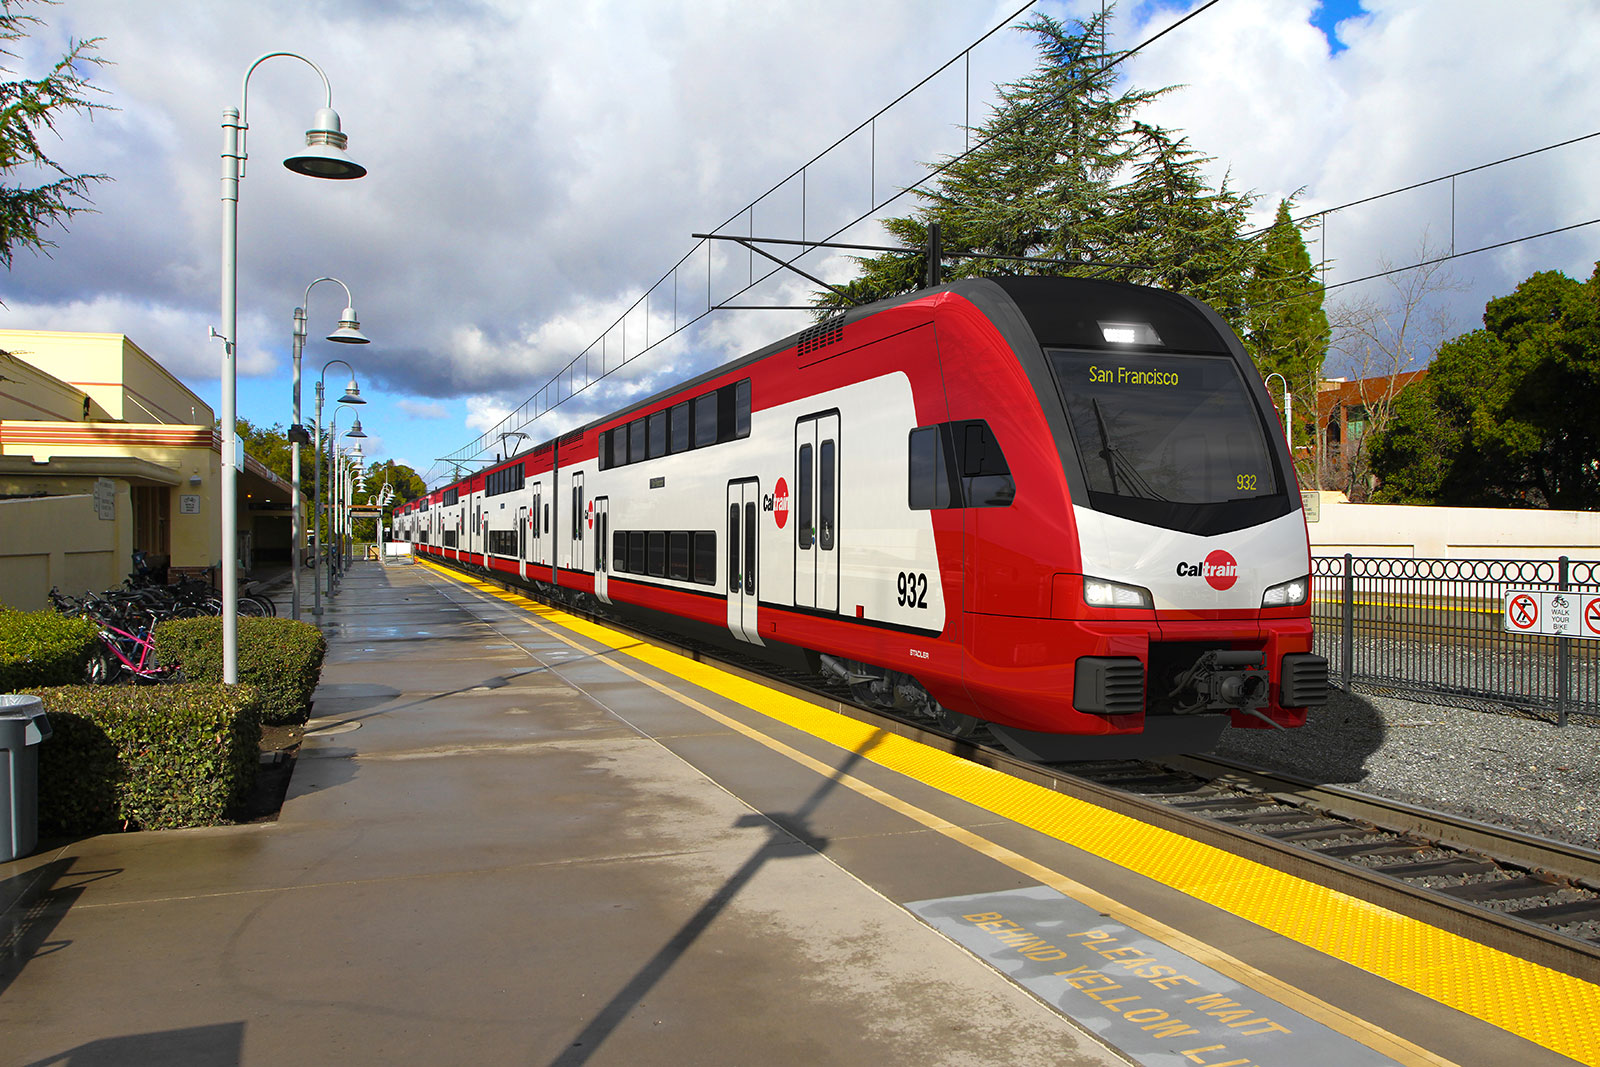 Artist impression of the KISS USA for Caltrain. Note the spacious top floor. Copyright Stadler Rail